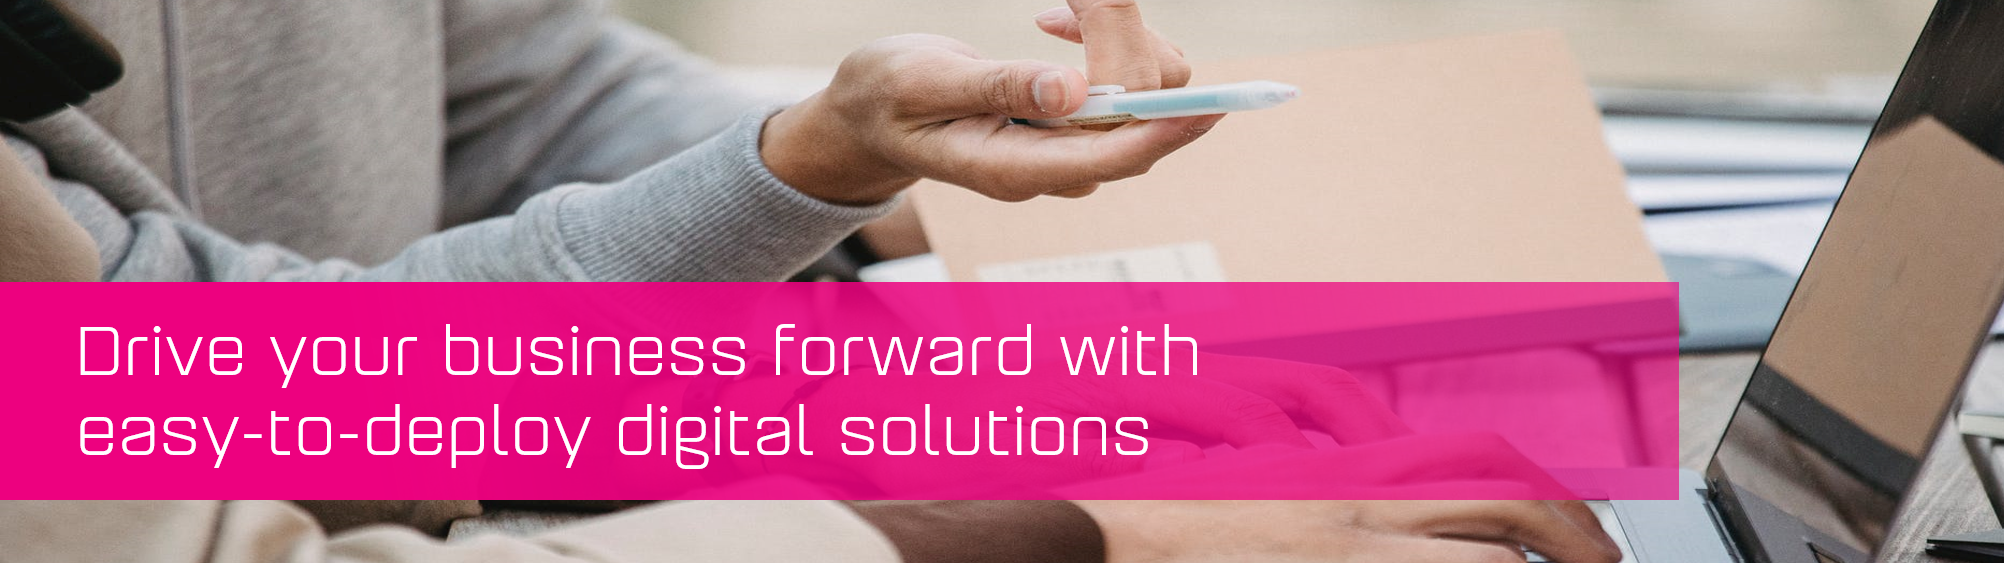 KCS SA - Blog - Drive your business with digital solutions banner